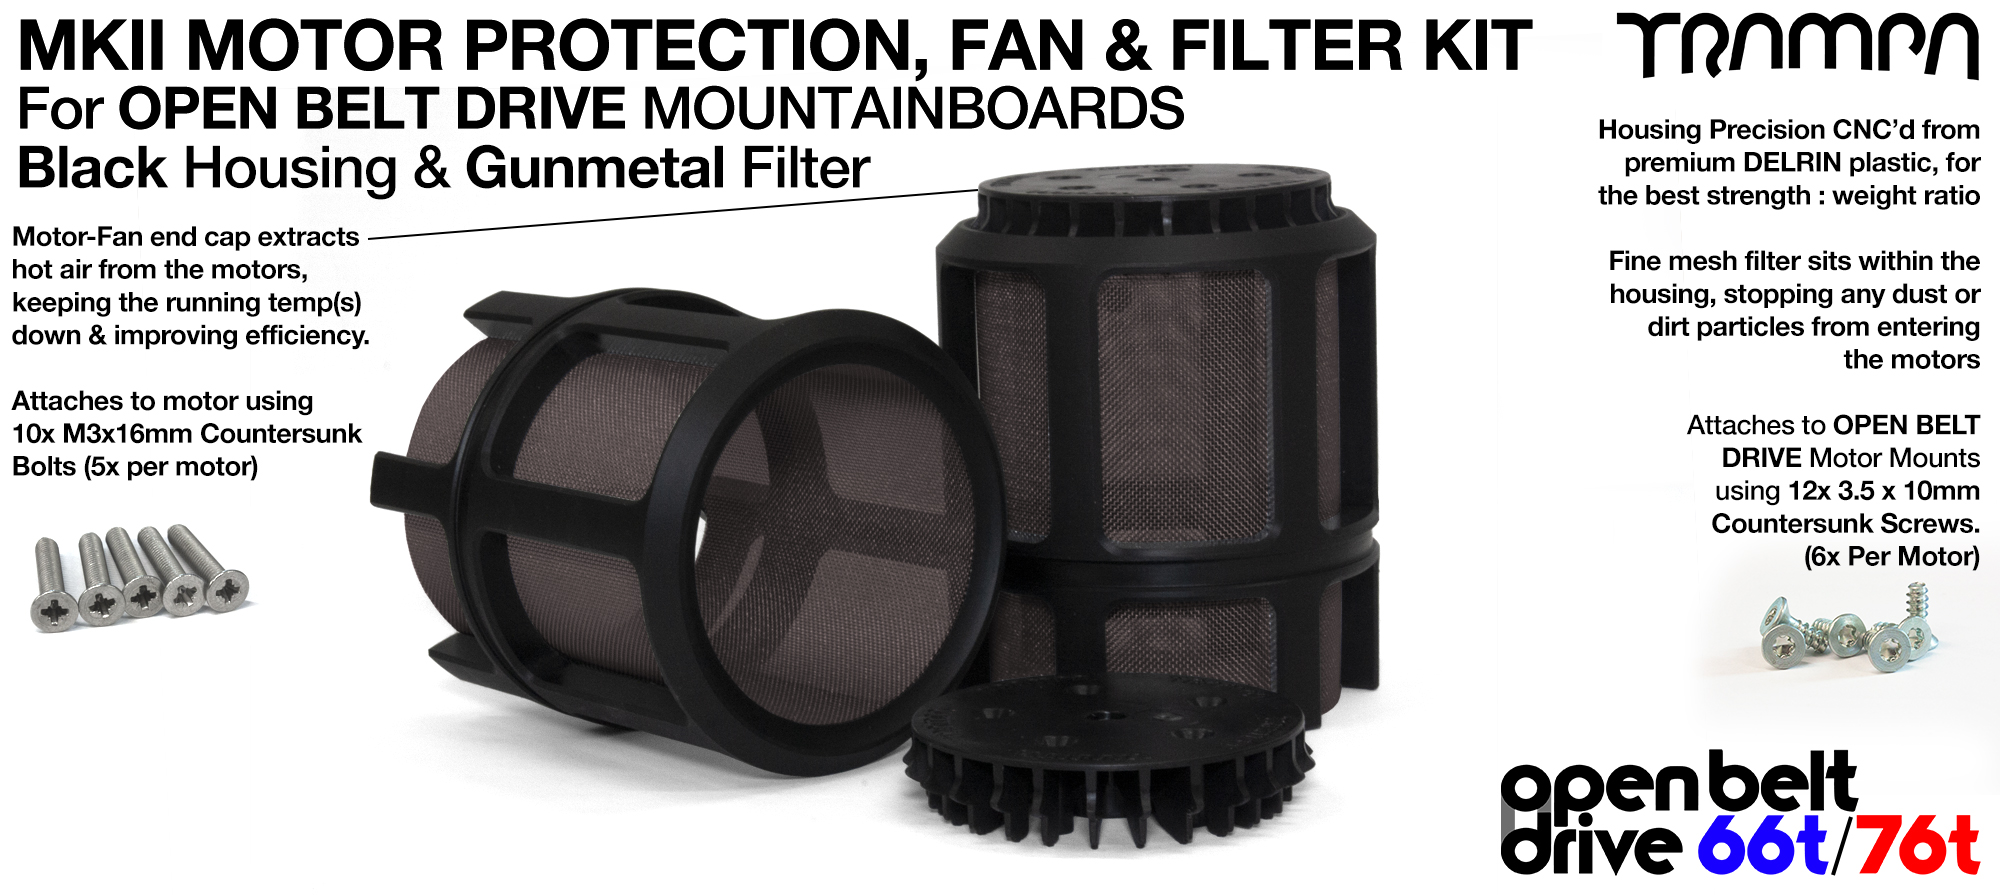 GUNMETAL Mesh filter in Motor Protection Cage with Fan